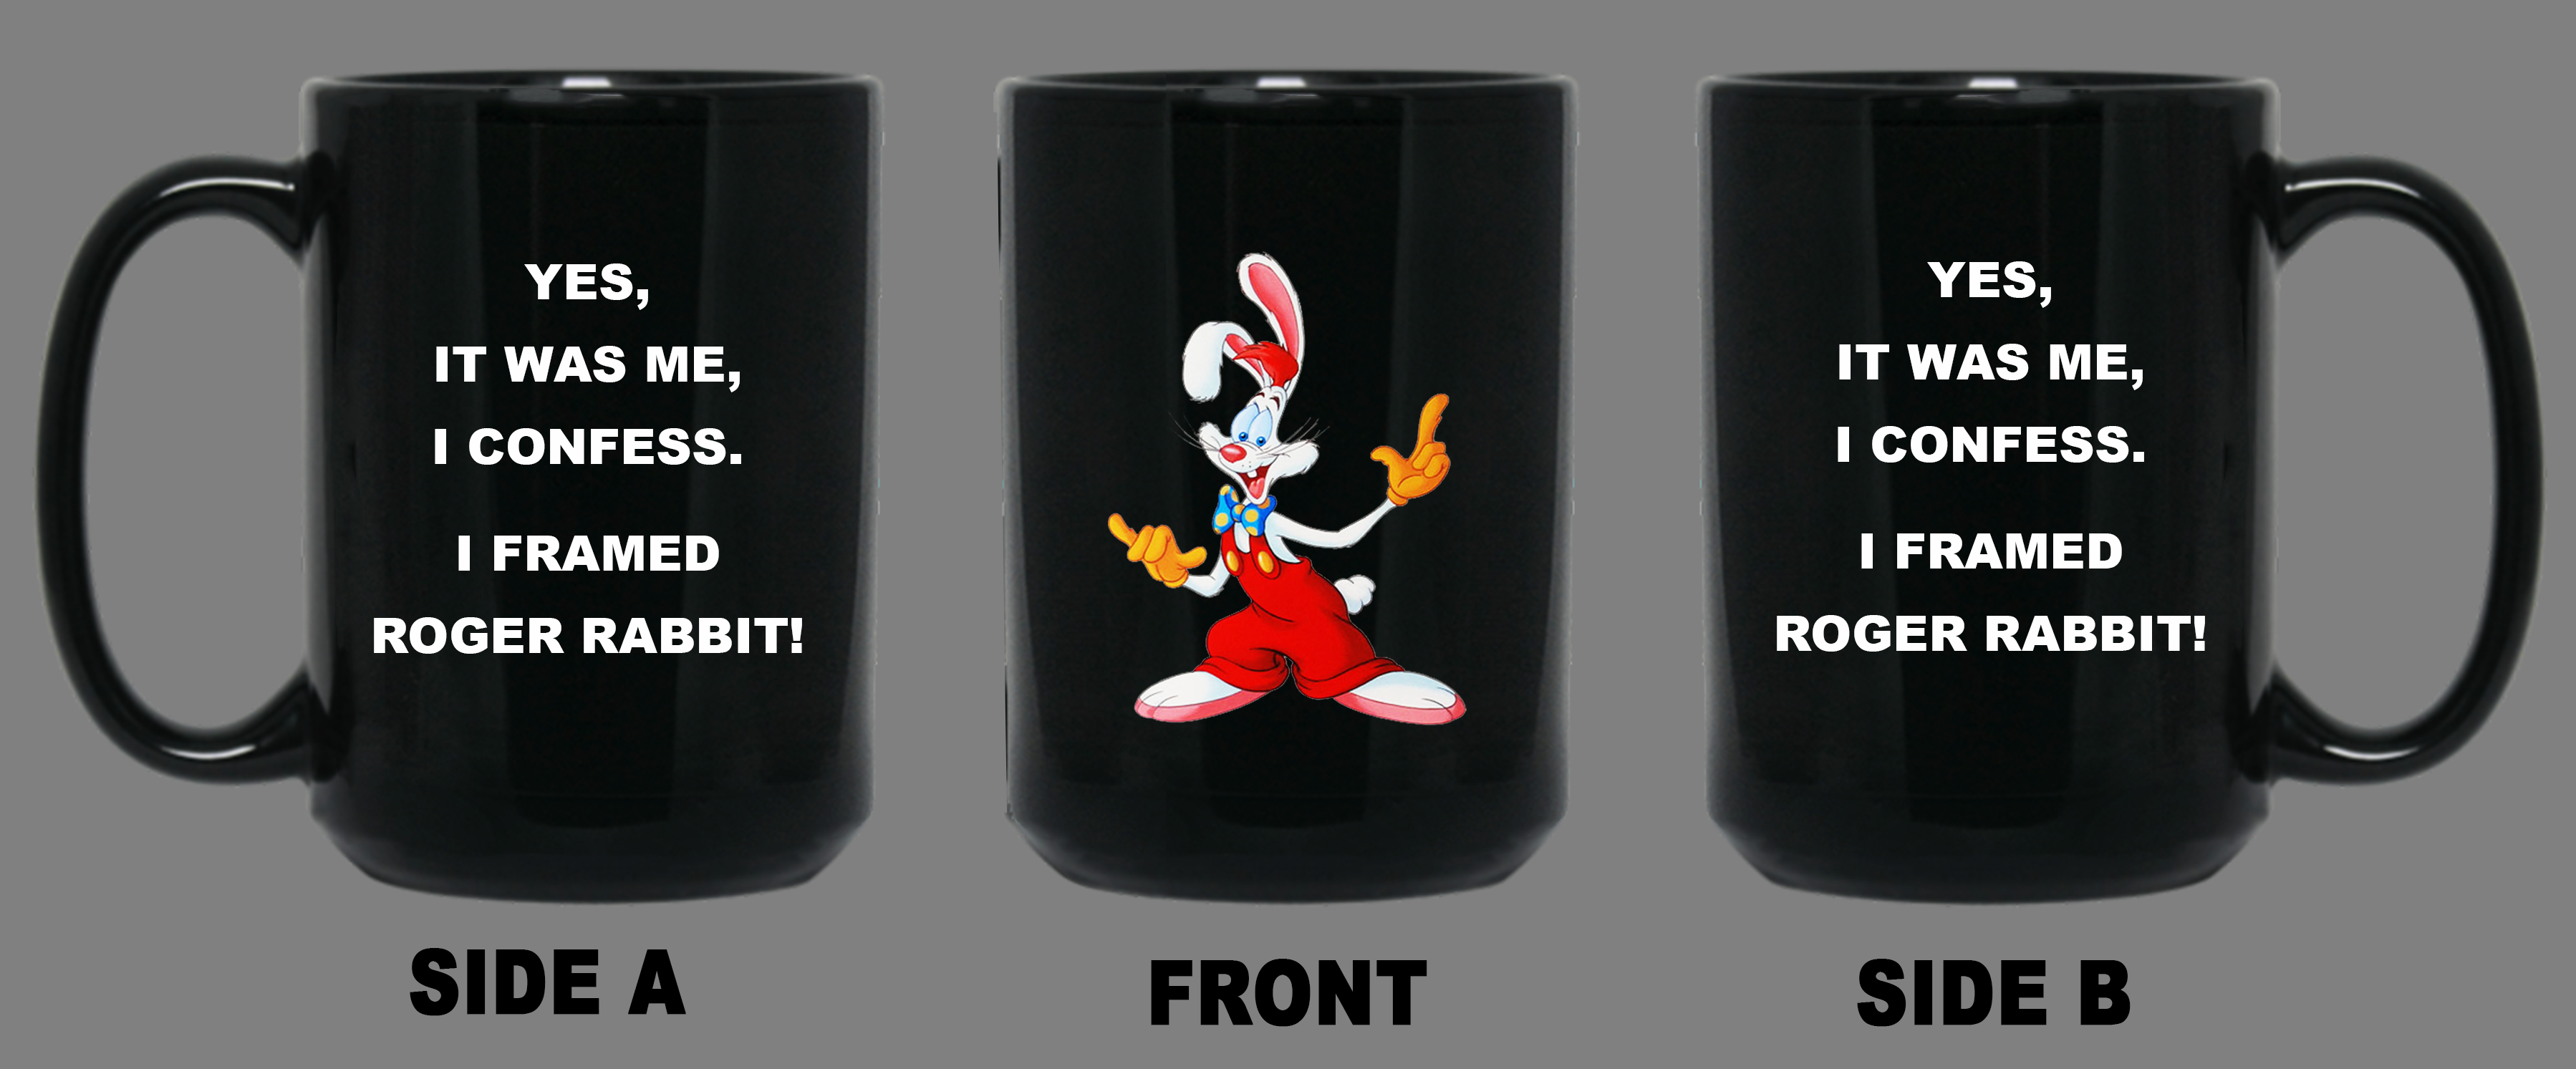 I FRAMED ROGER RABBIT 15oz MUG